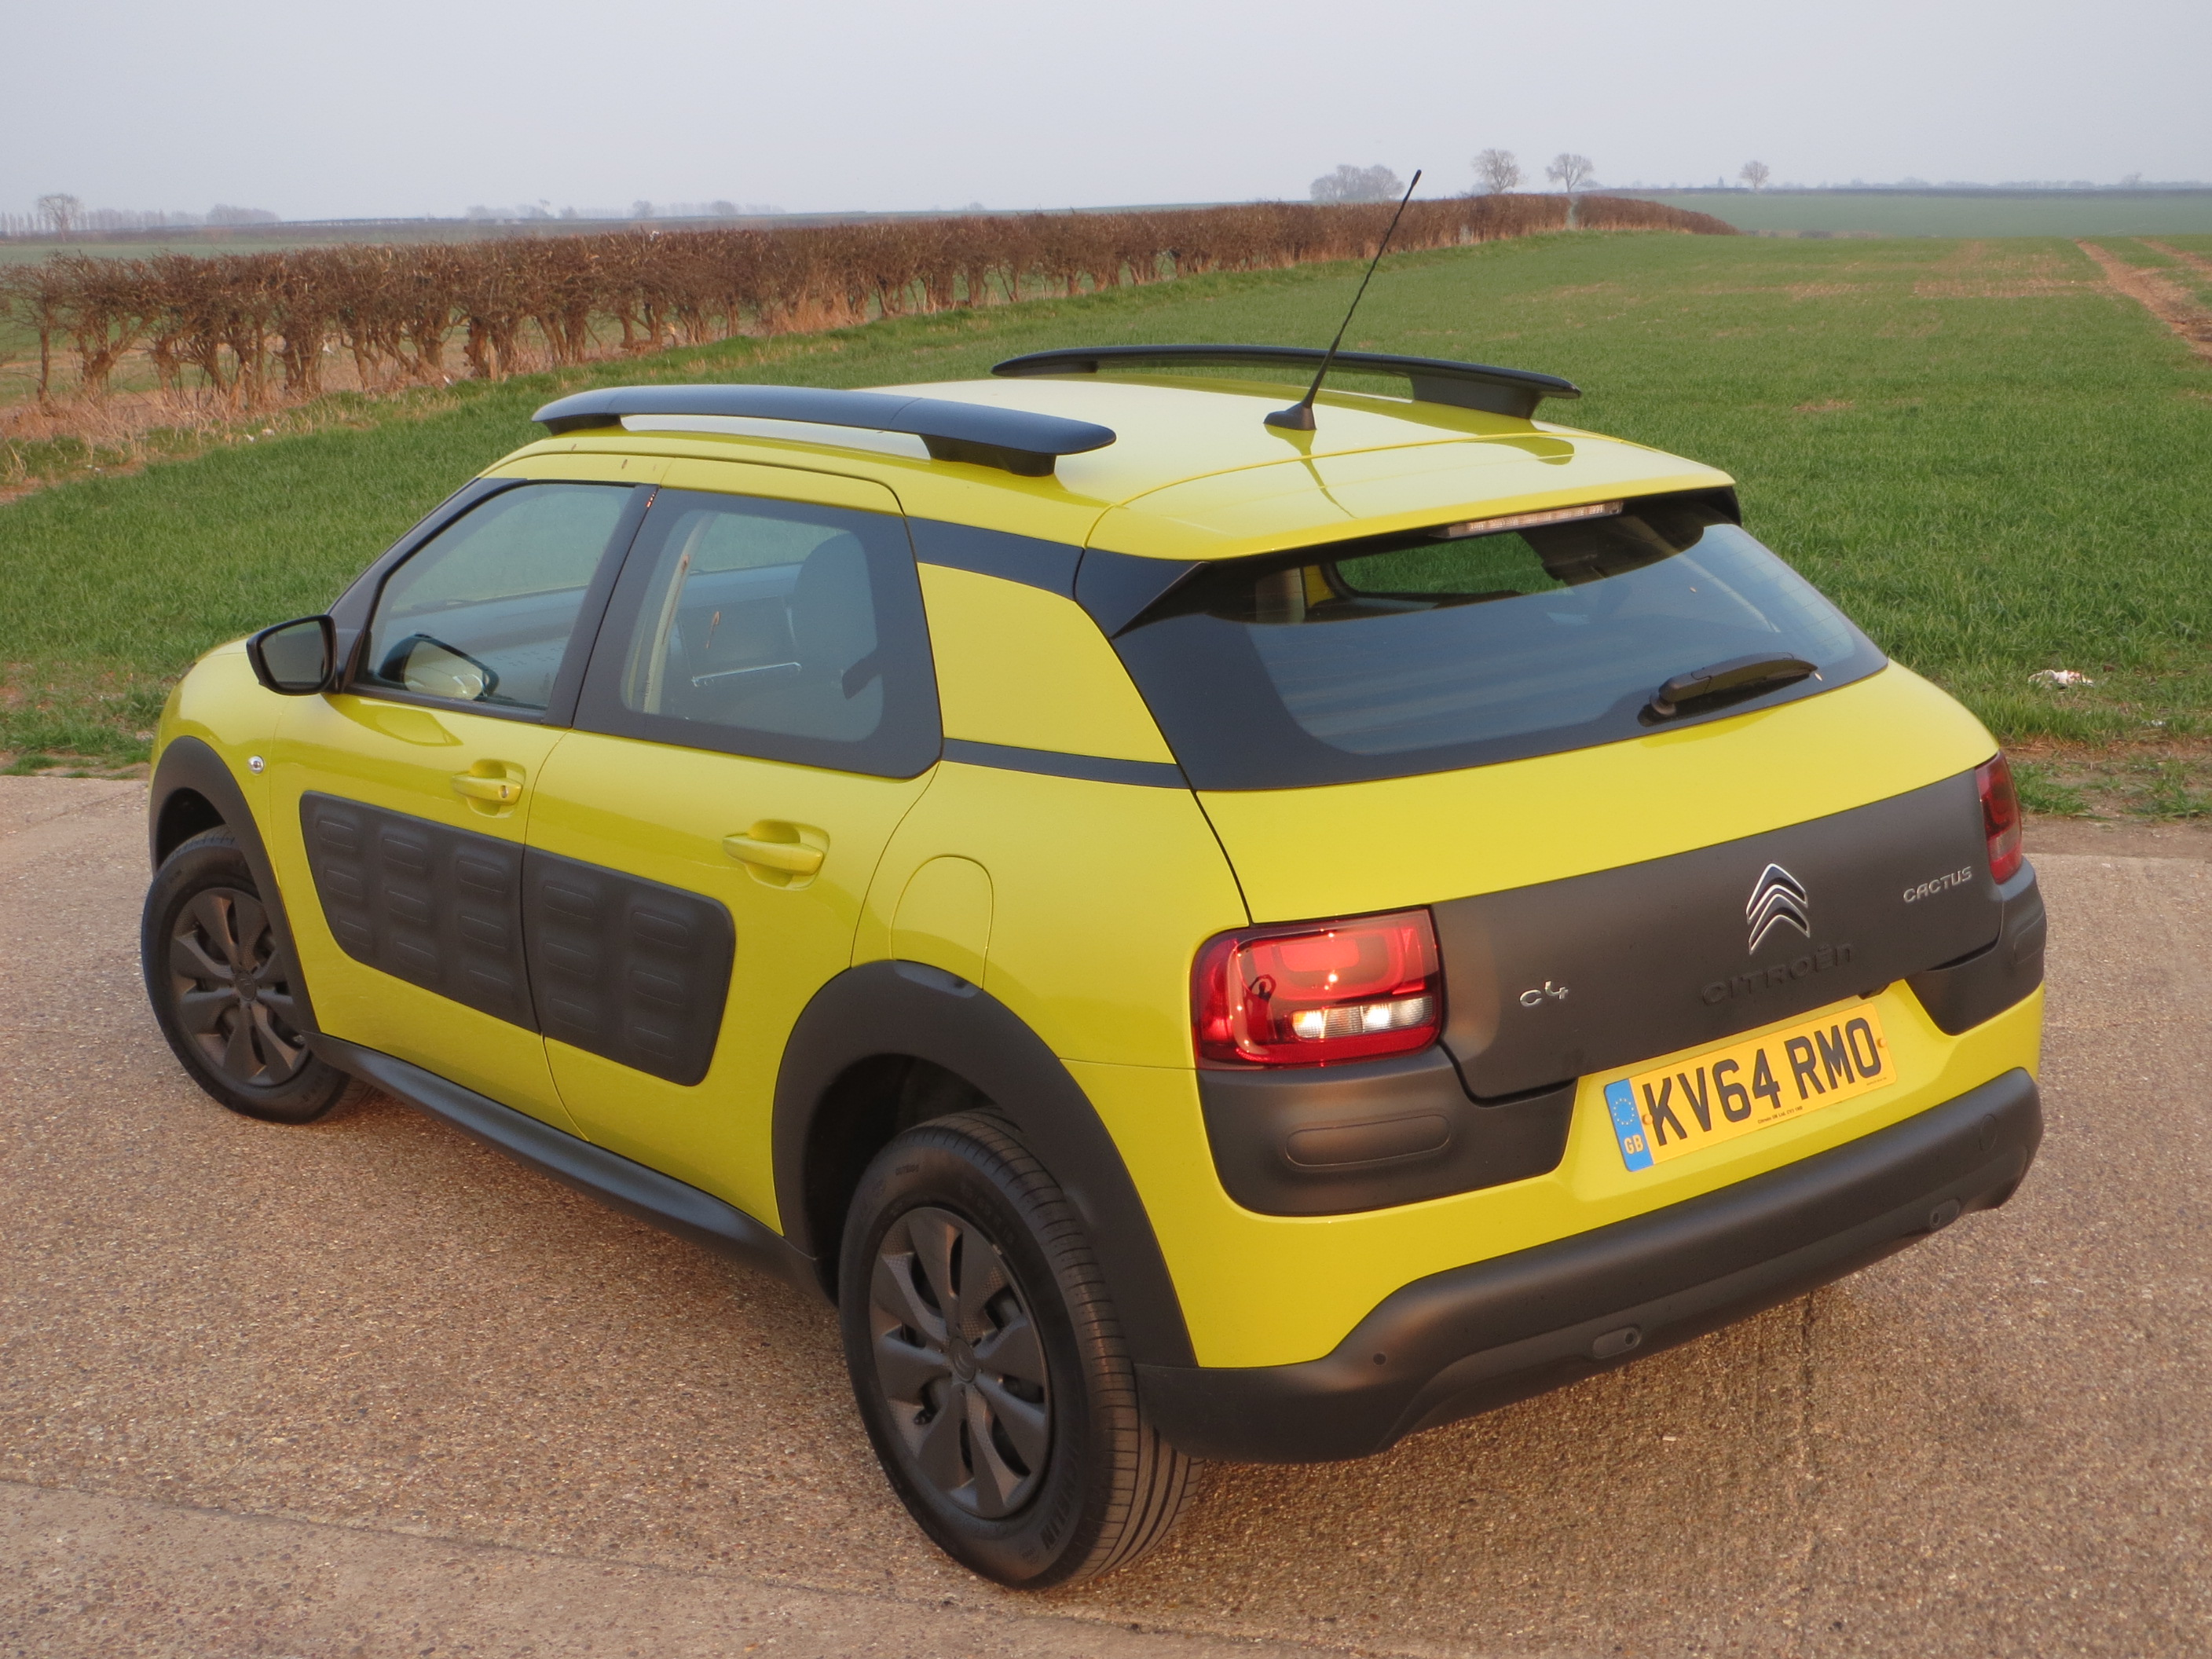 citroen c4 cactus feel bluehdi 100 road test report review. Black Bedroom Furniture Sets. Home Design Ideas